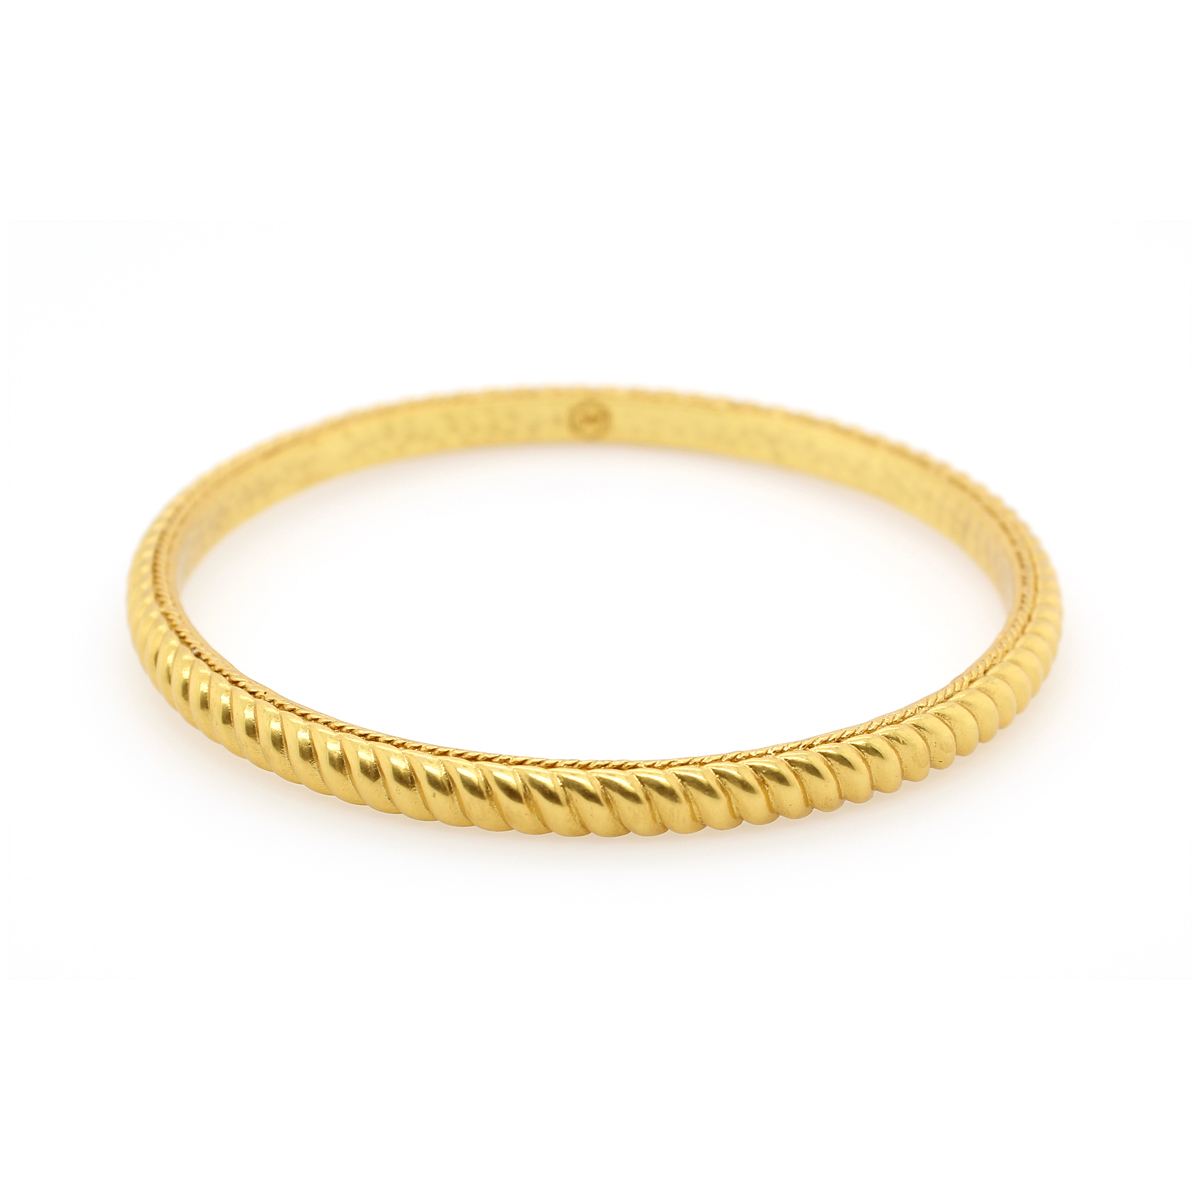 Julie Vos 24 Karat Gold Plated Medium Olympia Hinged Bangle